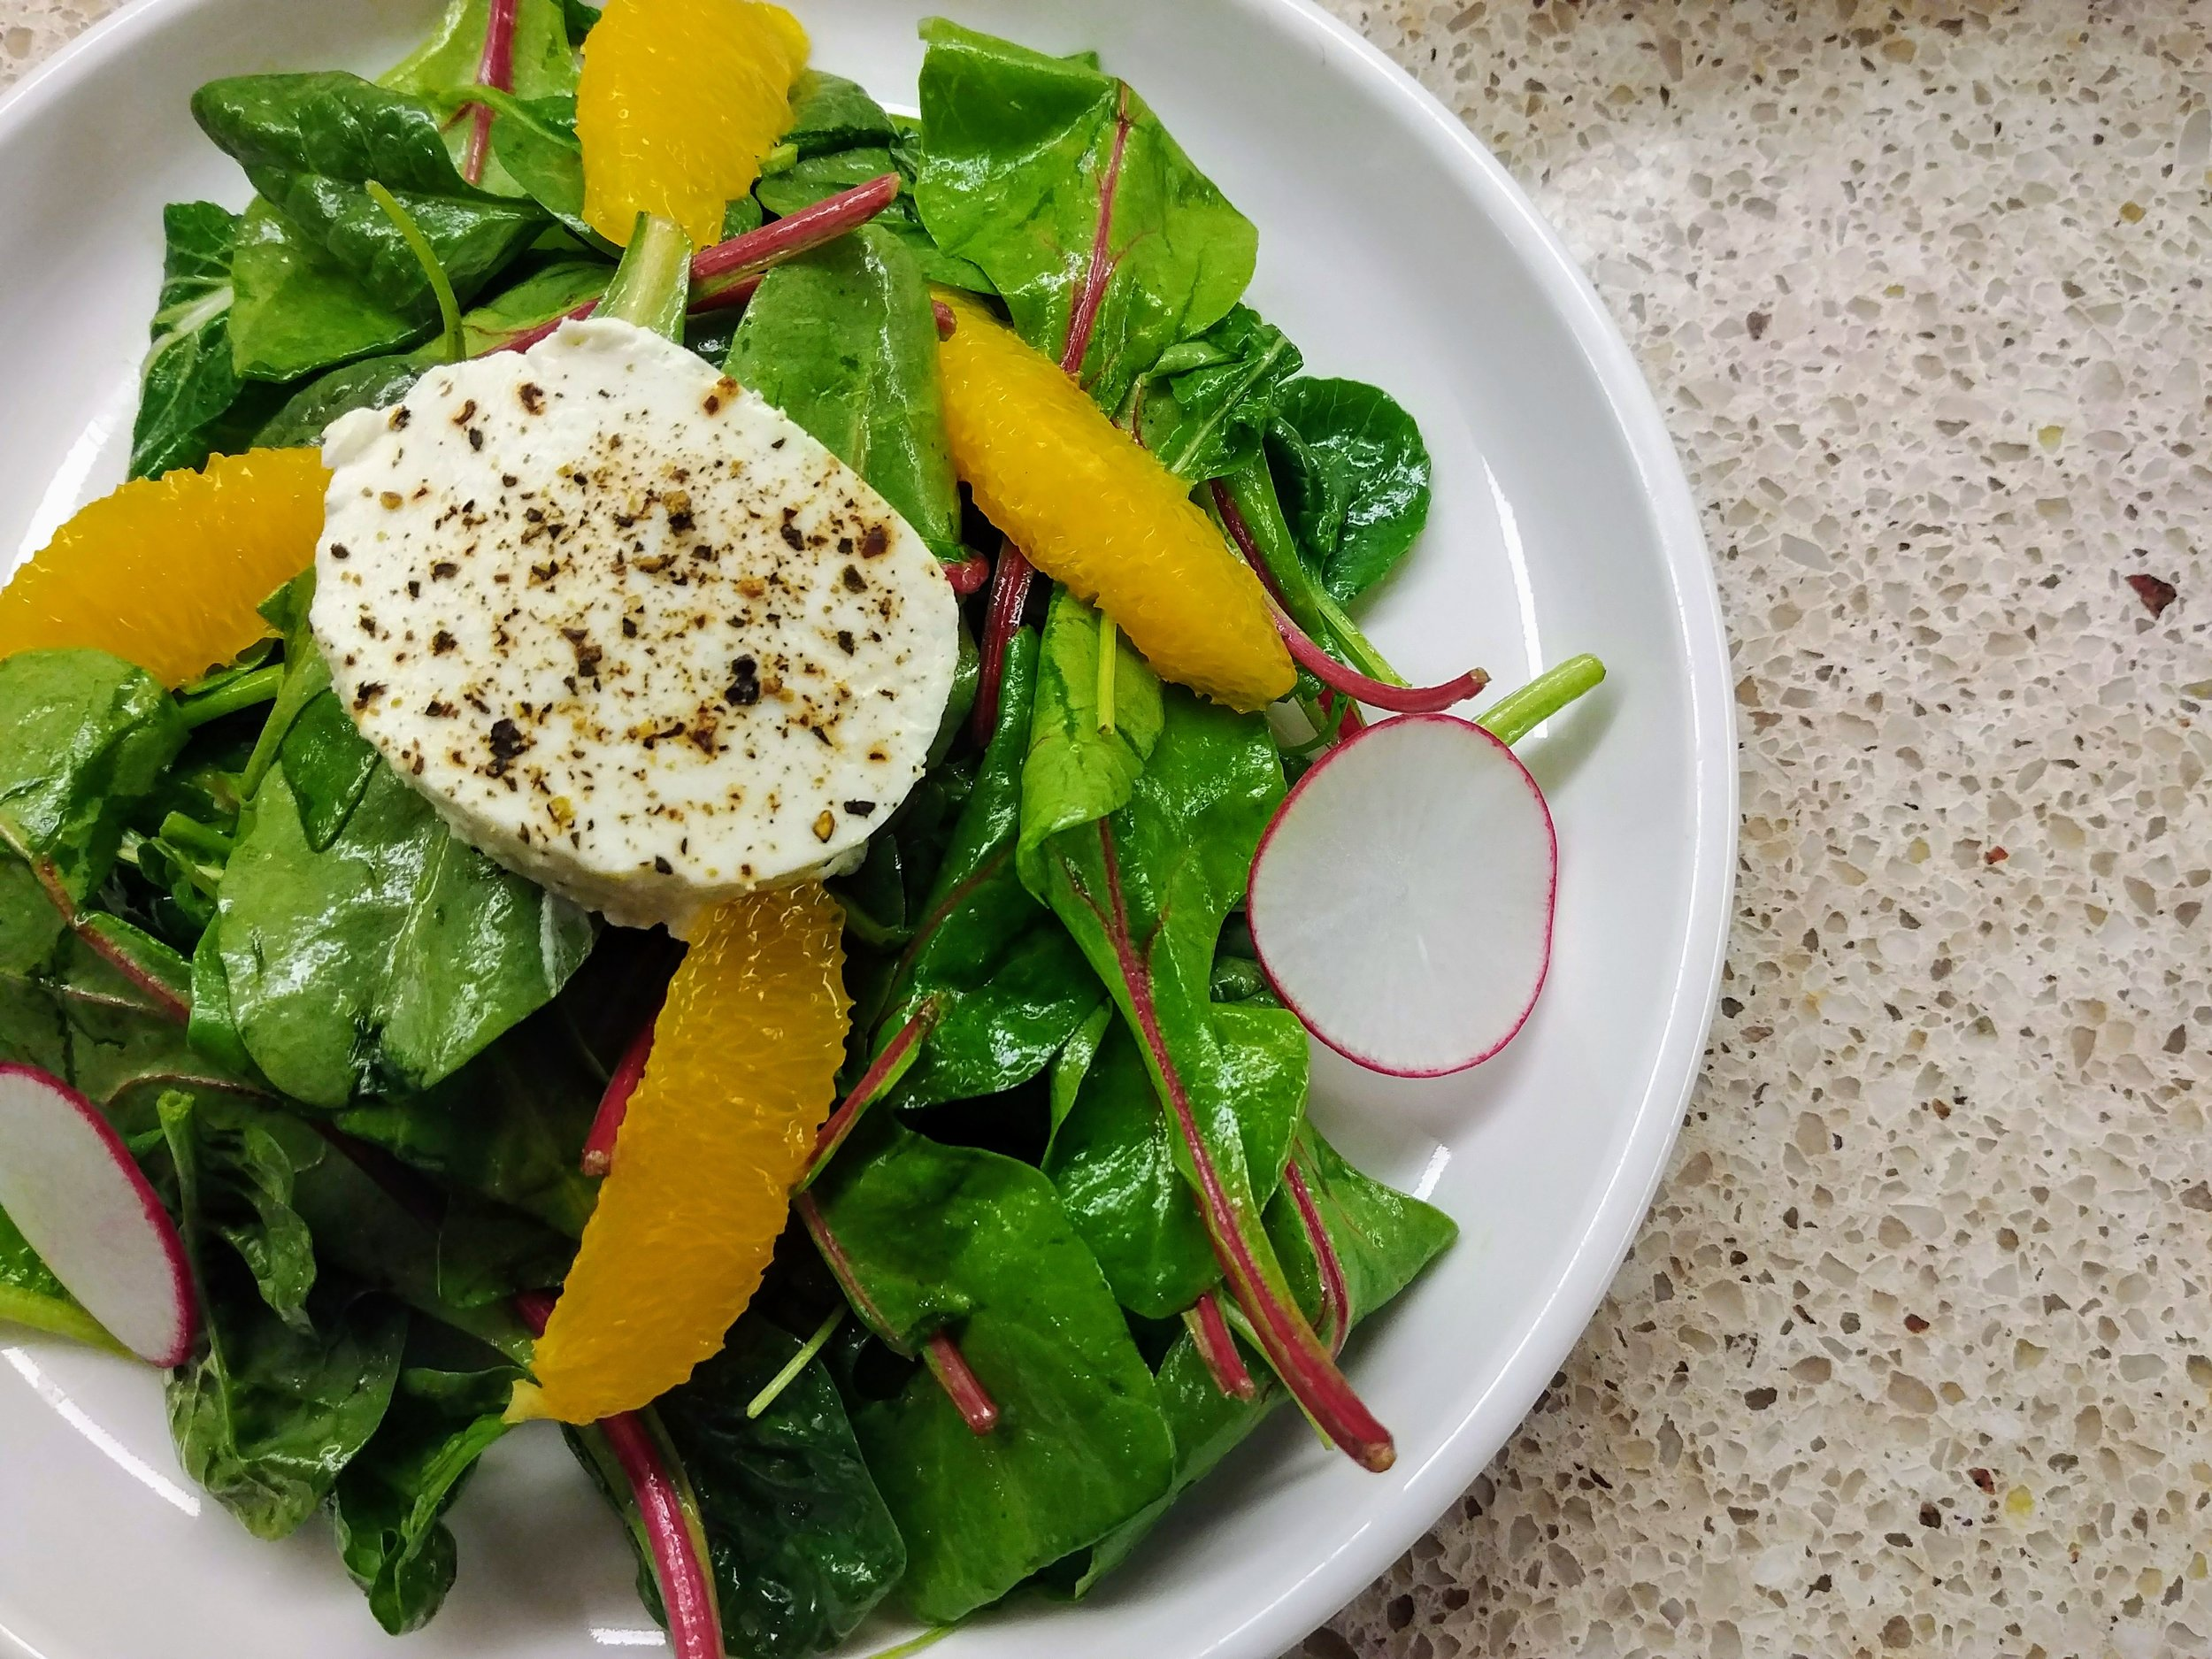 Diary of a Personal Chef-Salad